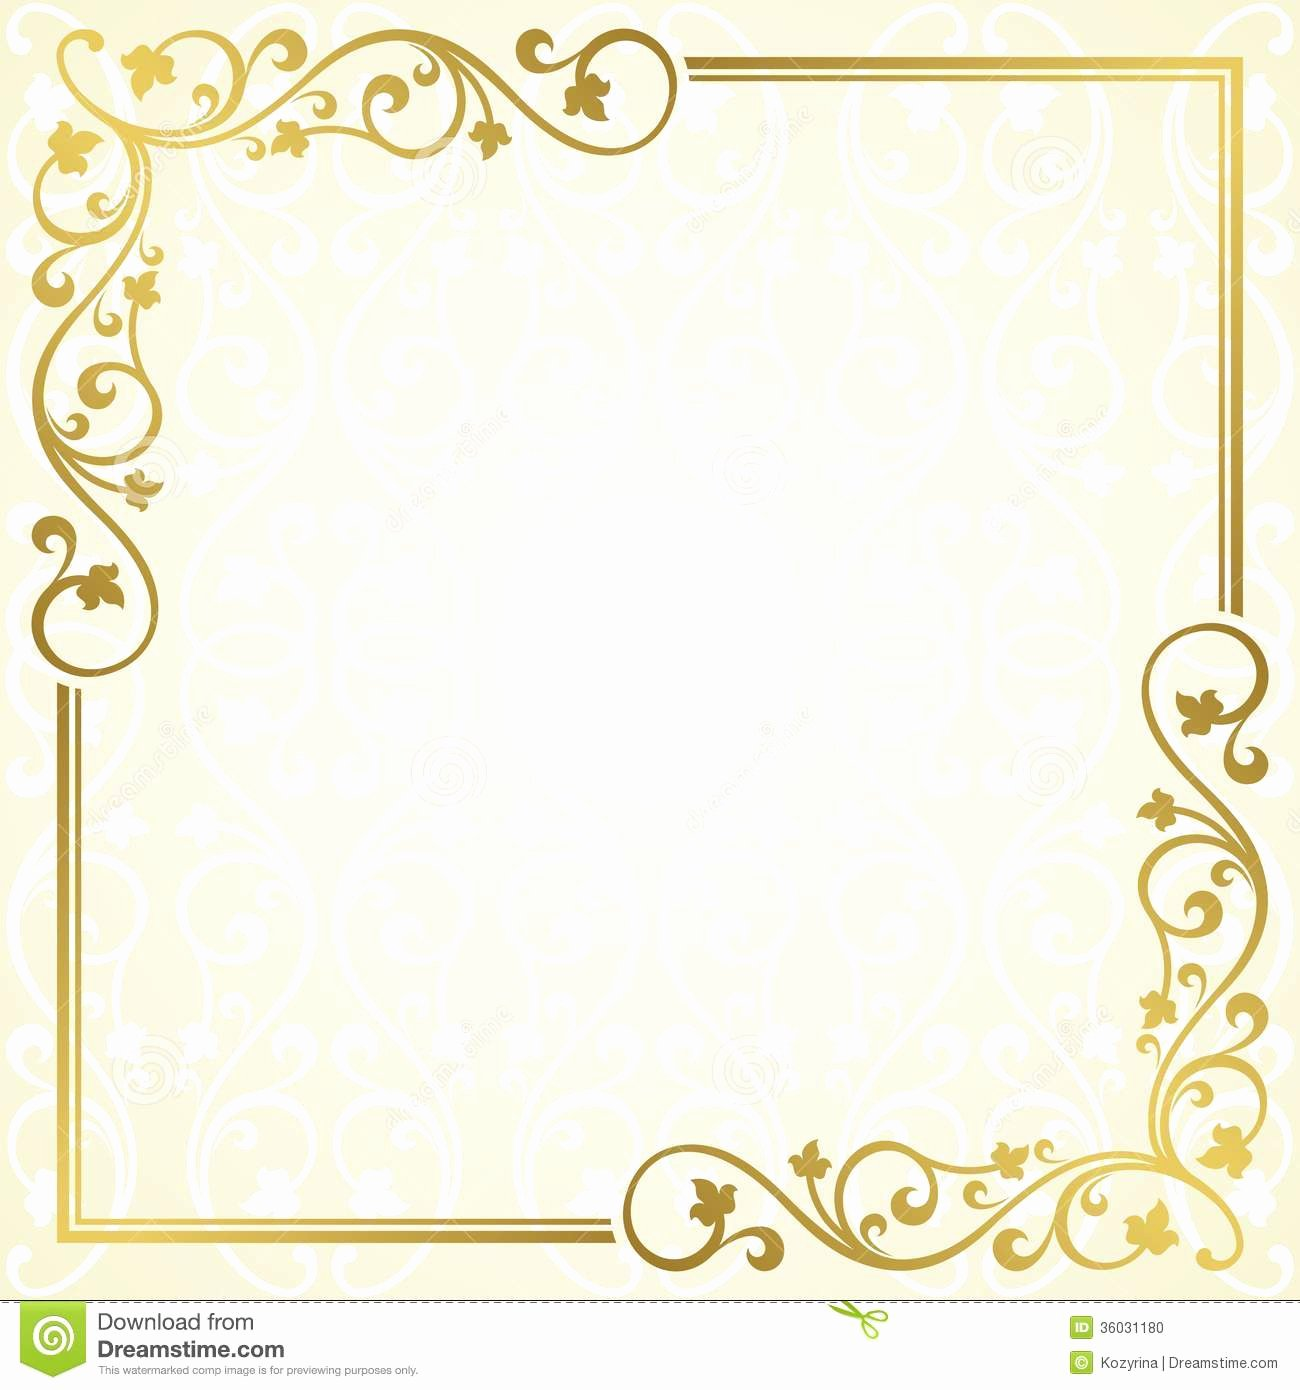 8 Best Of Wedding Invitation Cards Templates